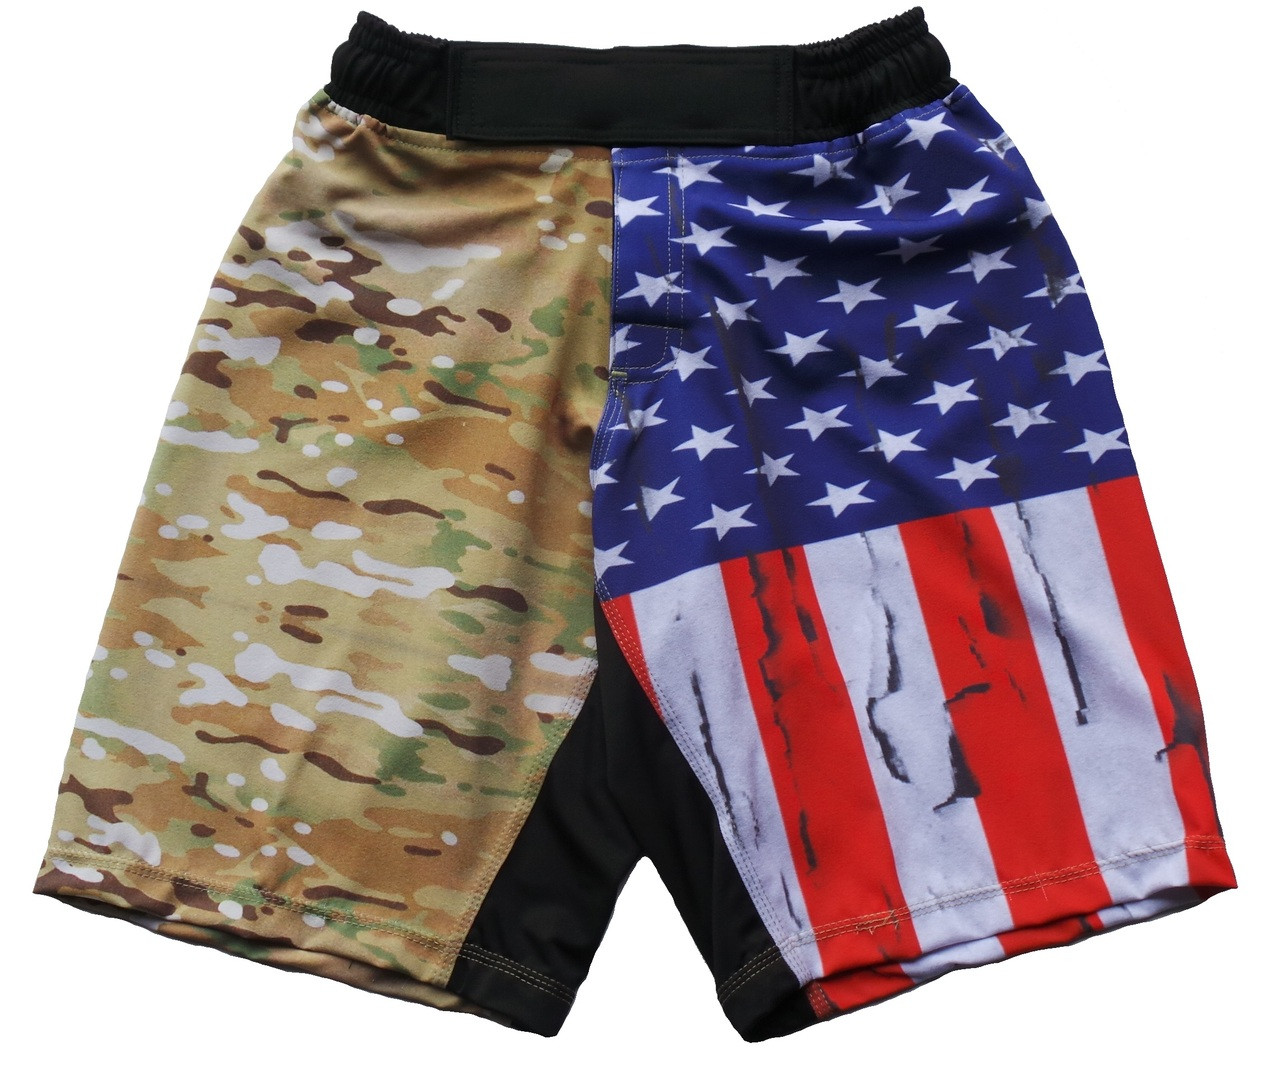 ccbf3eb822 Multicam Flag Athletic Shorts designed for Crossfit - Combatives ...